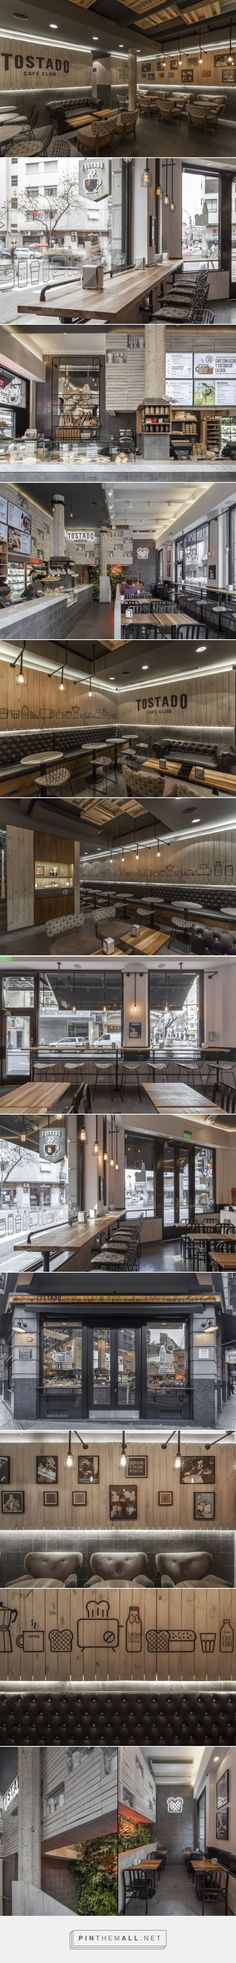 Tostado Cafe Club by Hitzig Militello Arquitectos, Buenos Aires – Argentina Café Bar, Restaurant Concept, Restaurant Bar, Bagdad Cafe, Coffee Restaurants, Cafe Concept, Coffee Store, Cafe Bistro, Coffee Shop Design